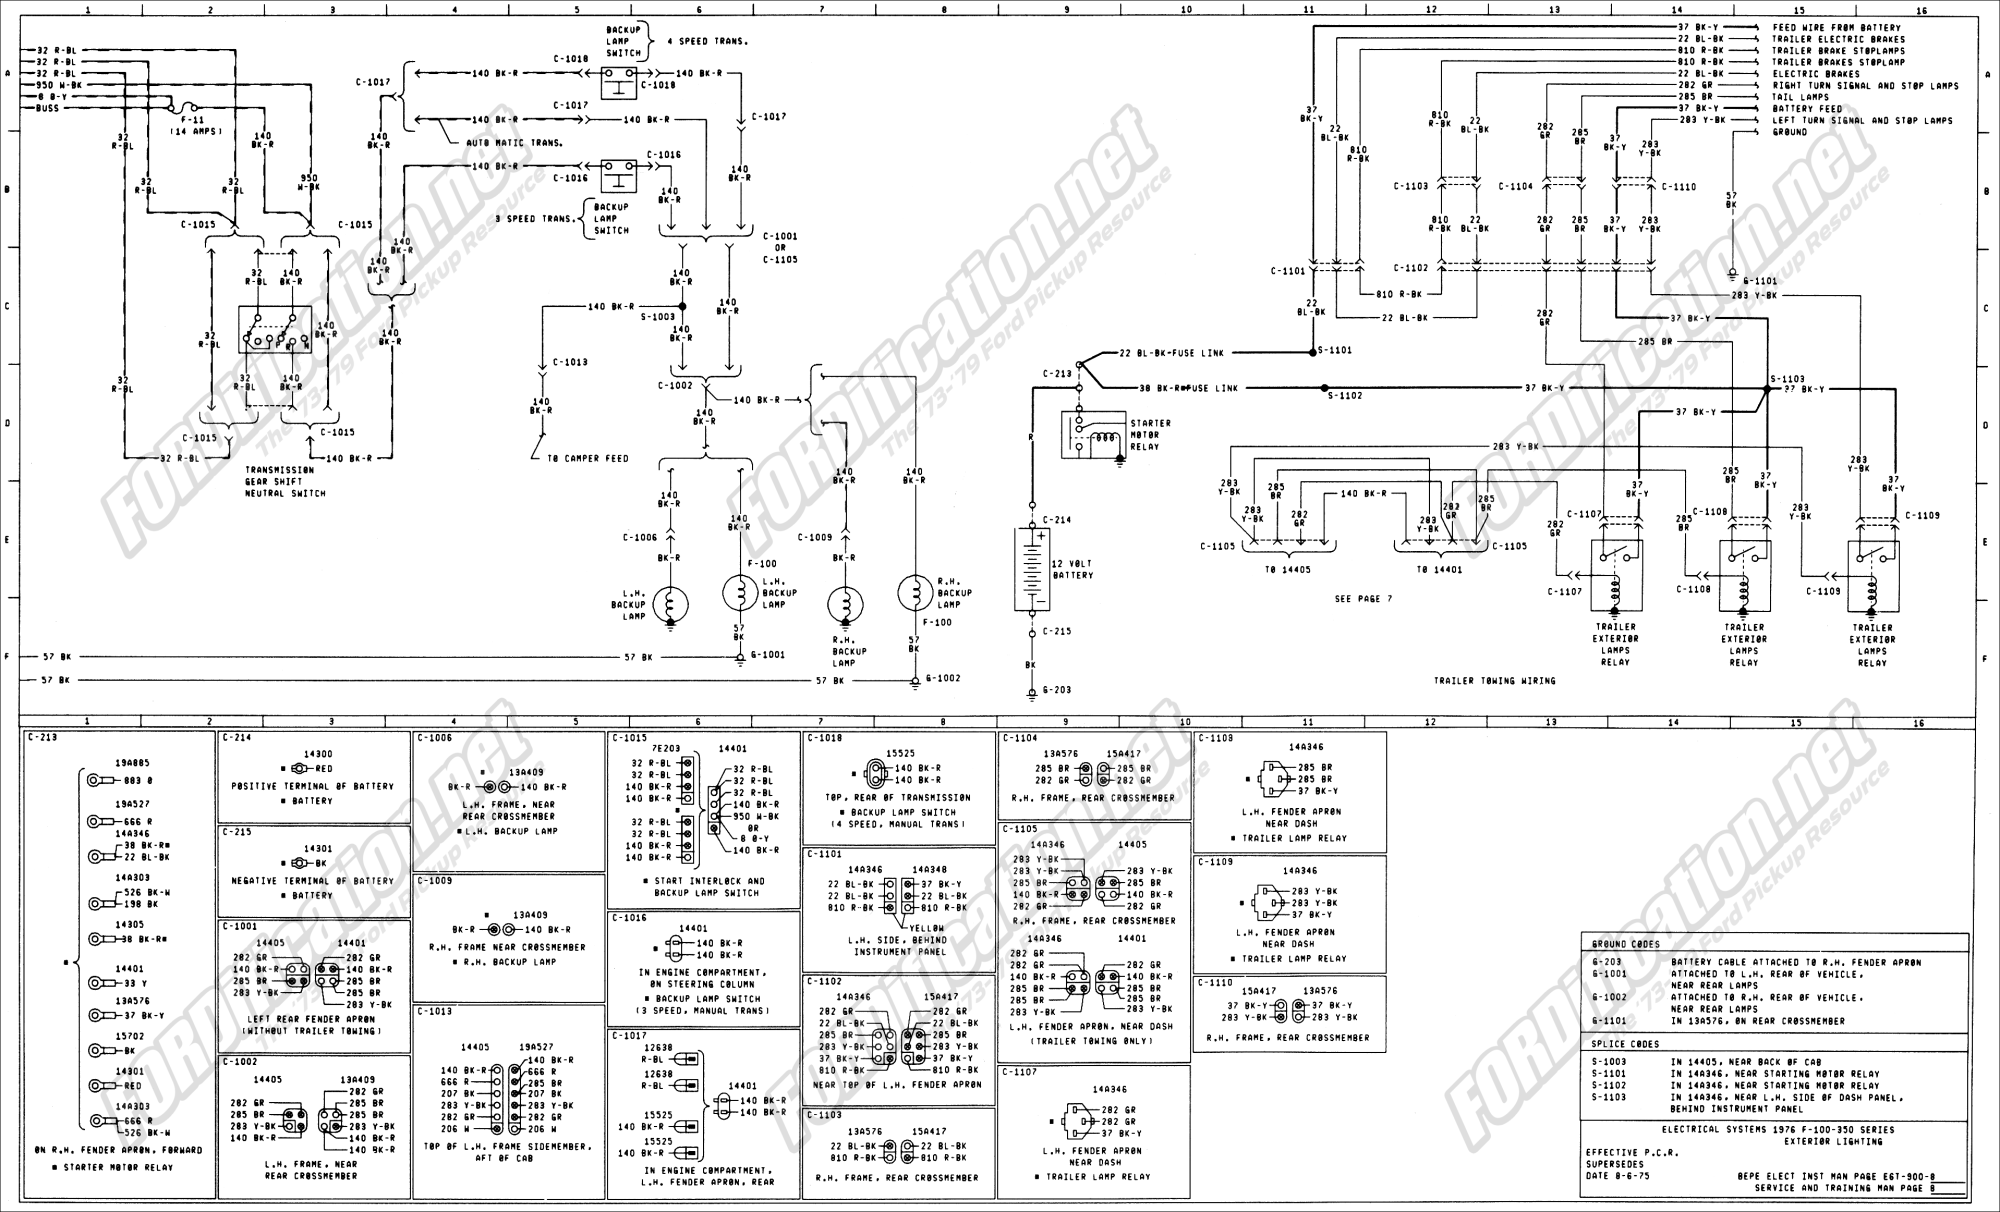 hight resolution of turn signal flasher brakes light fuses blowing out 1999 ford motorhome chassis schematic 2013 ford f53 wiring diagram